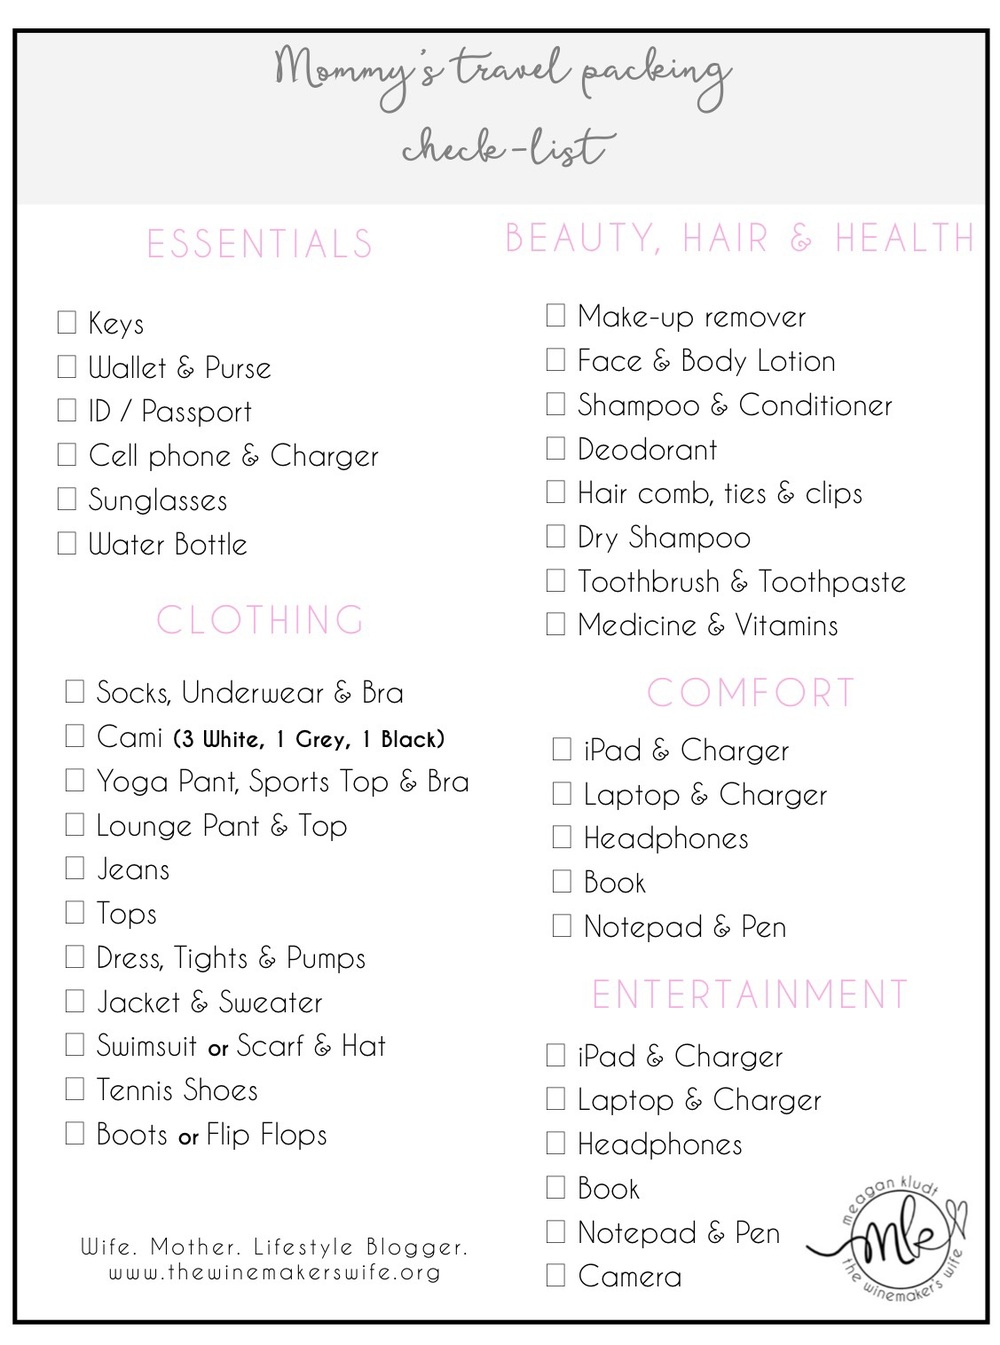 Mommy's travel packing check-list | free printable | the winemakers wife